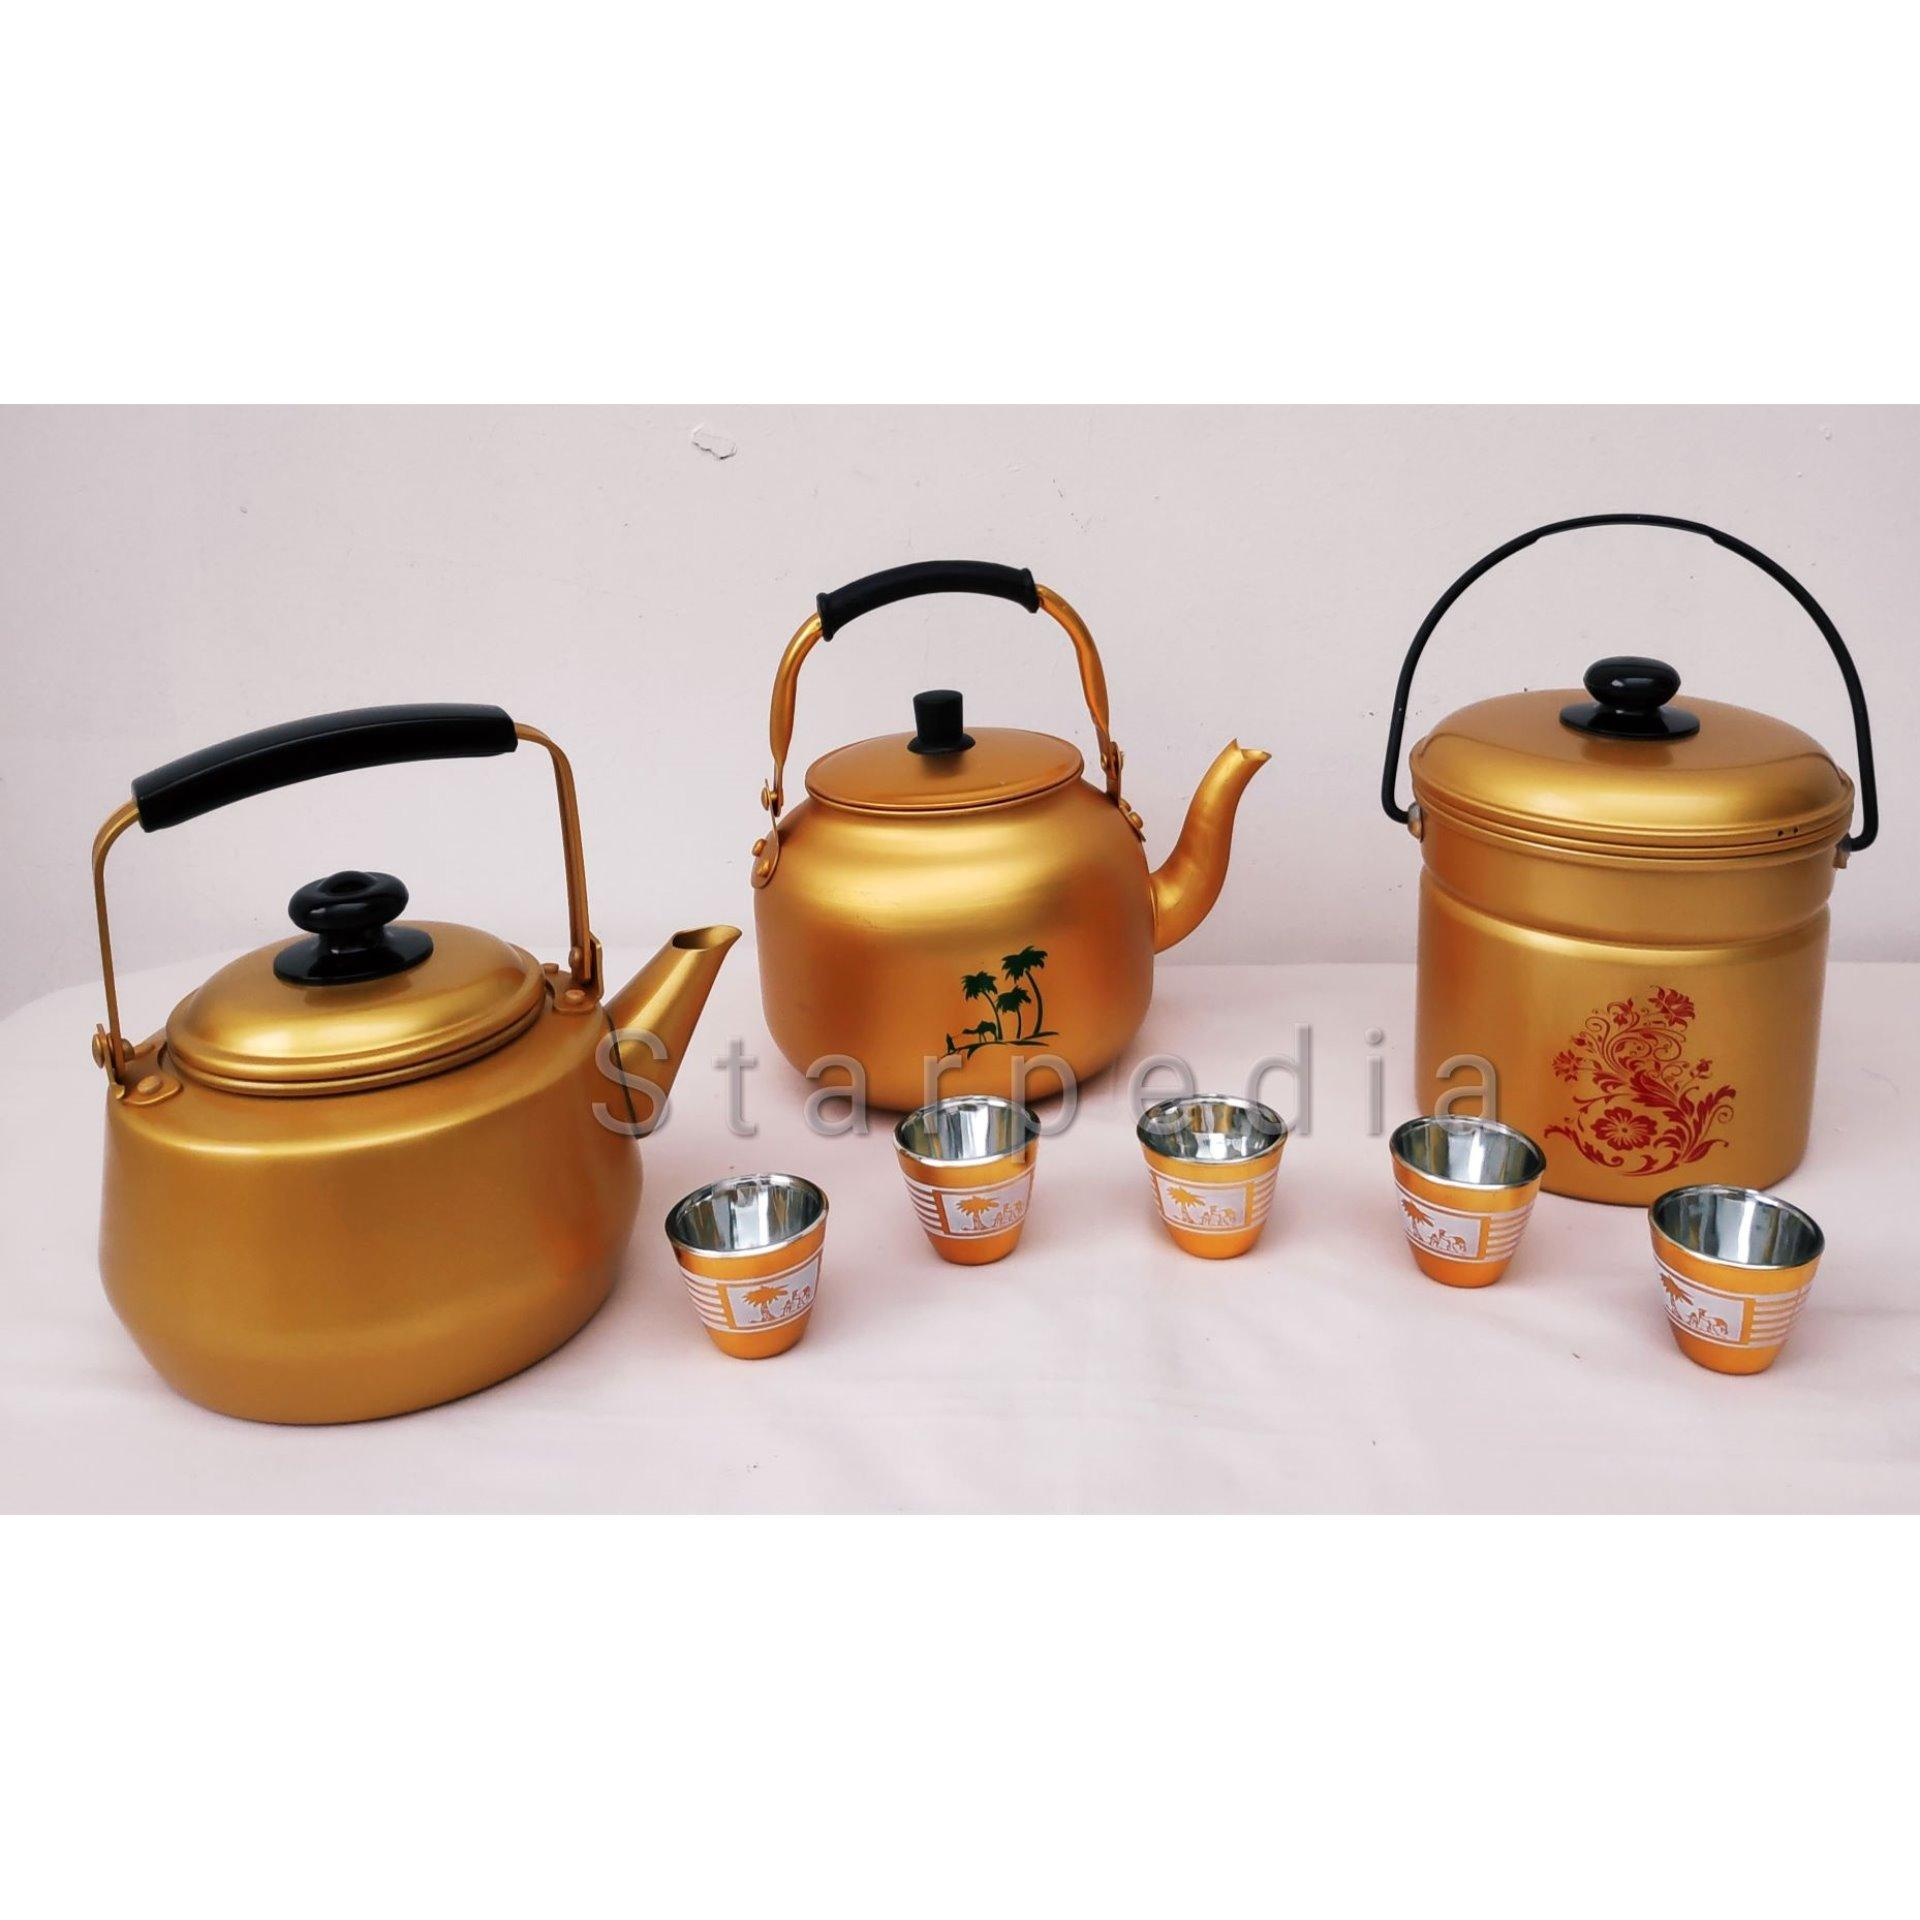 Rantang Kuning Tunggal 14cm / Golden Single Canister 14cm - 3 .